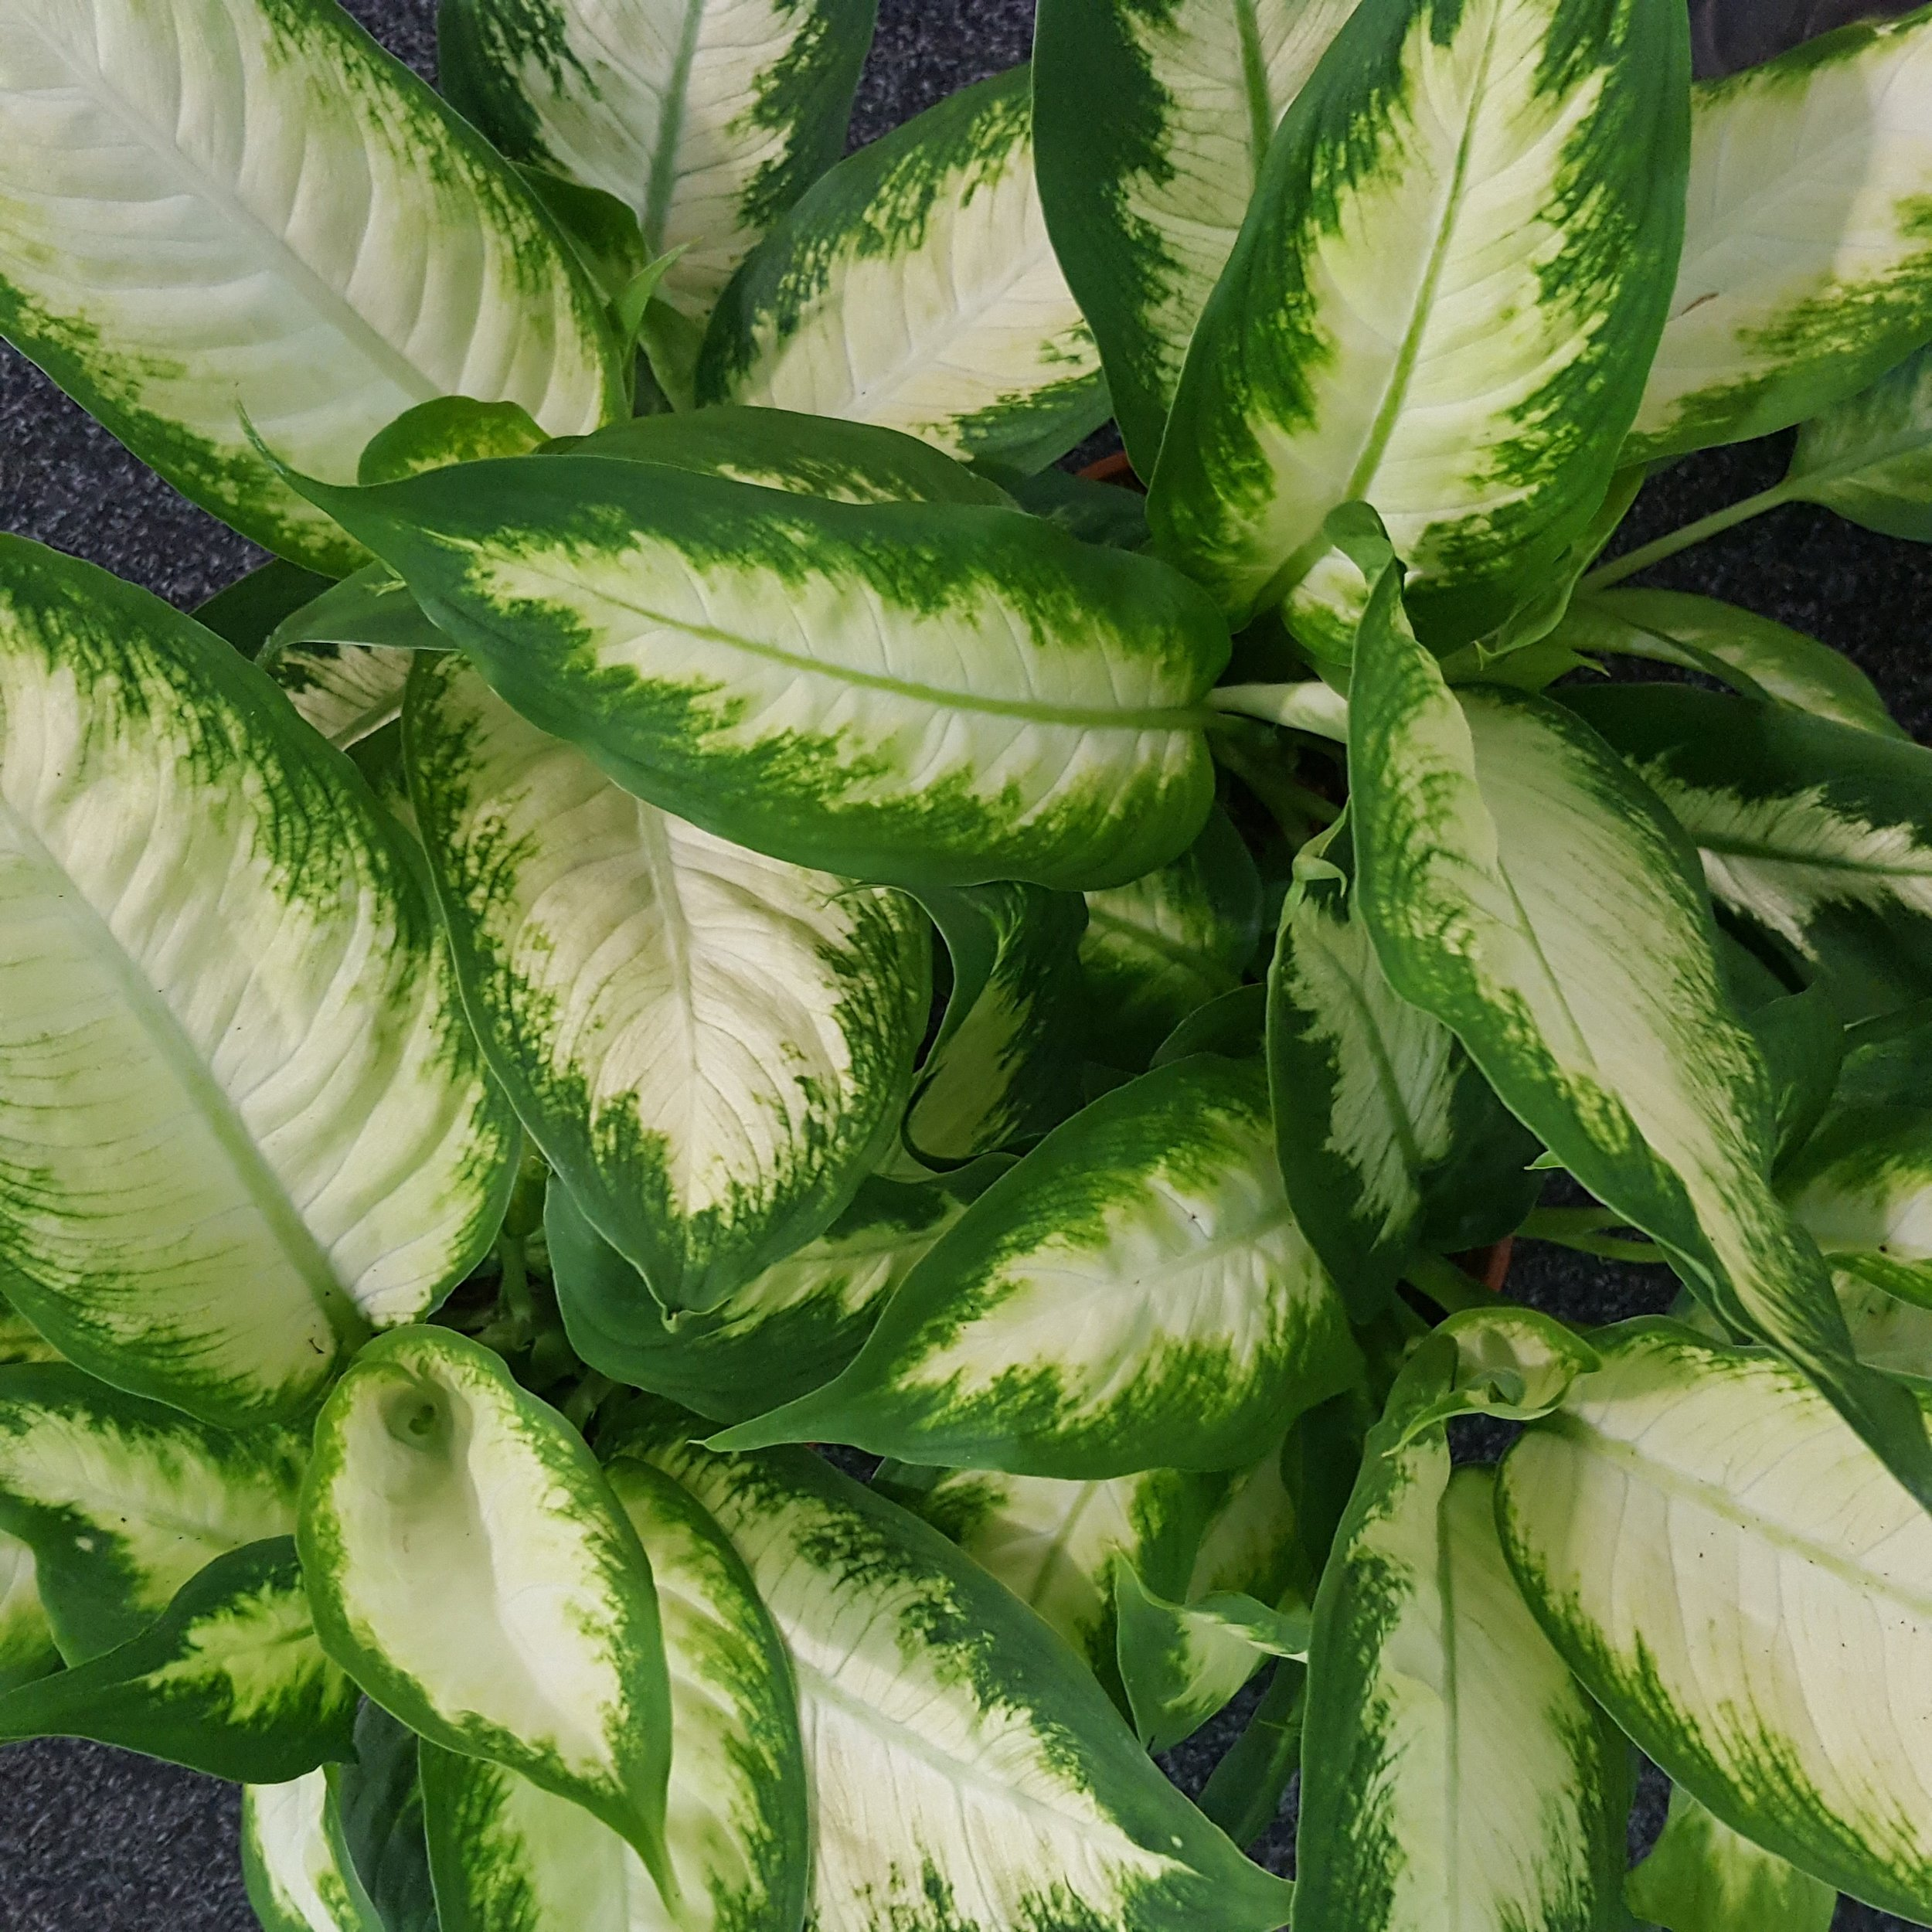 Dieffenbachia / Dumb Cane - Bright light will make a Dieffenbachia bleach out it's leaves to shield and protect itself. This is not a good plant for direct sunlight. If you see water droplets on the leaves, you should wipe these tears away as they can harm the plant. Dieffenbachia like to dry out between watering so do not keep the soil moist. They show browning edges when they are over and under watered. * Information from Our House Plants